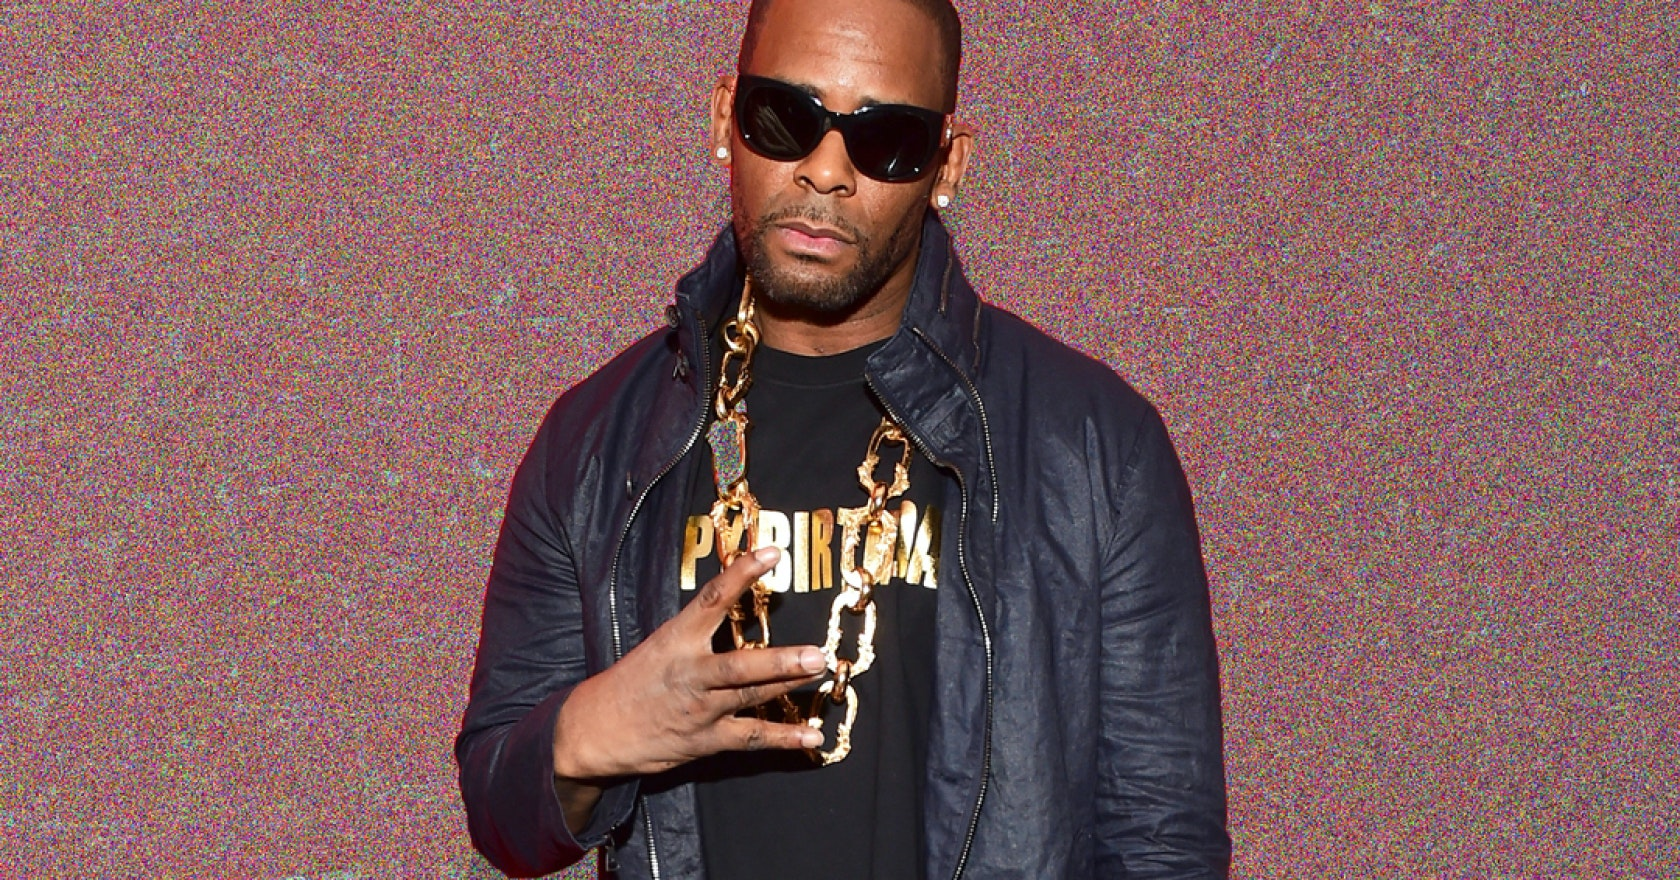 R Kelly Hair Style: Why We Need To Talk About R Kelly's Immunity To The #MeToo